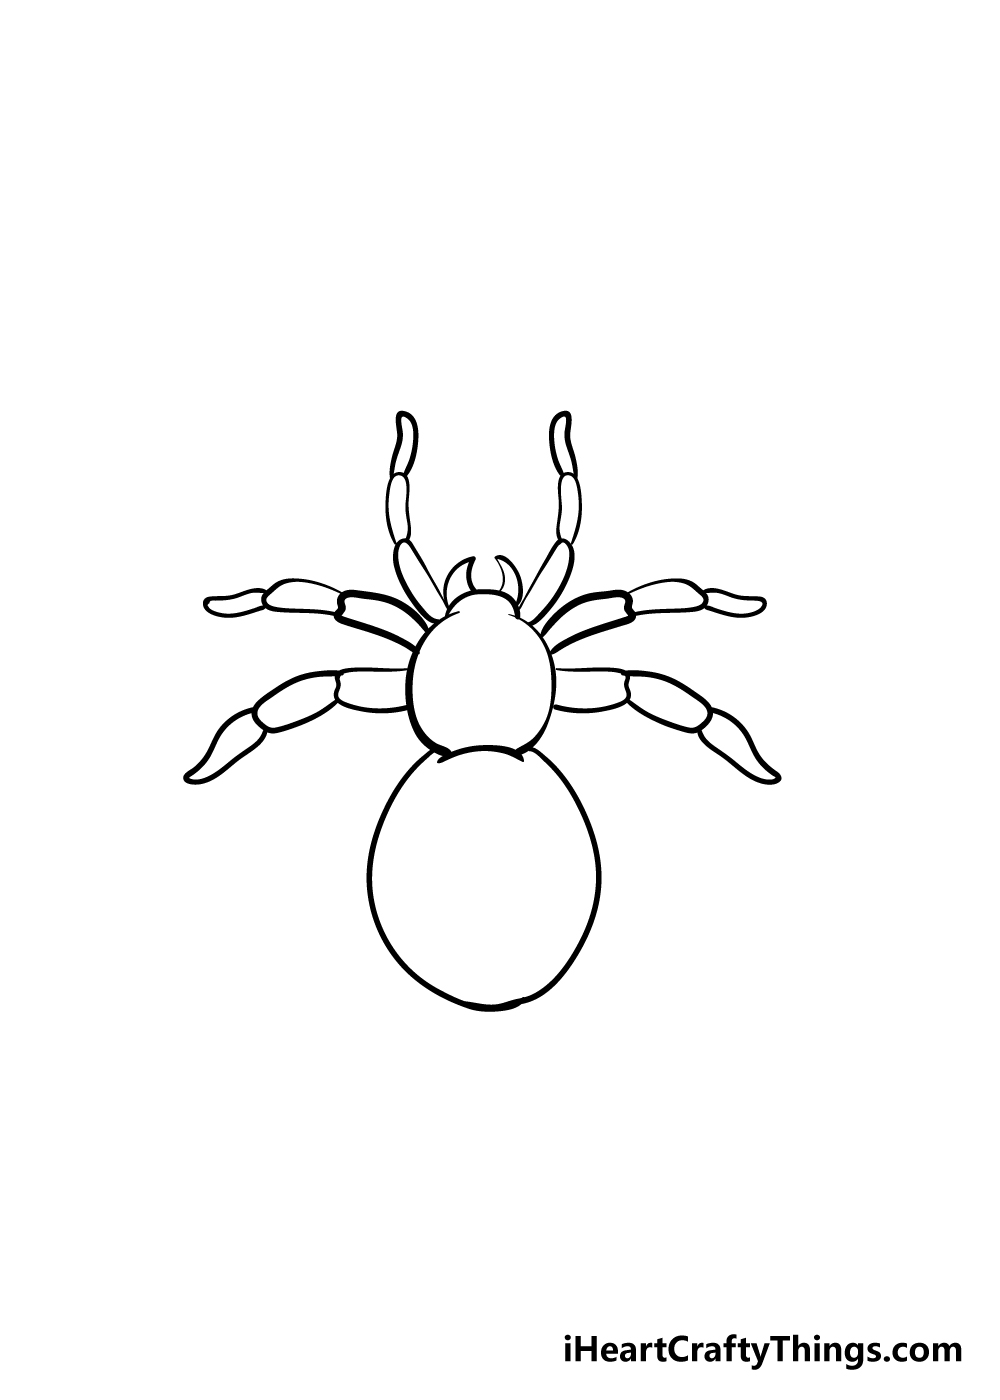 spider drawing step 5